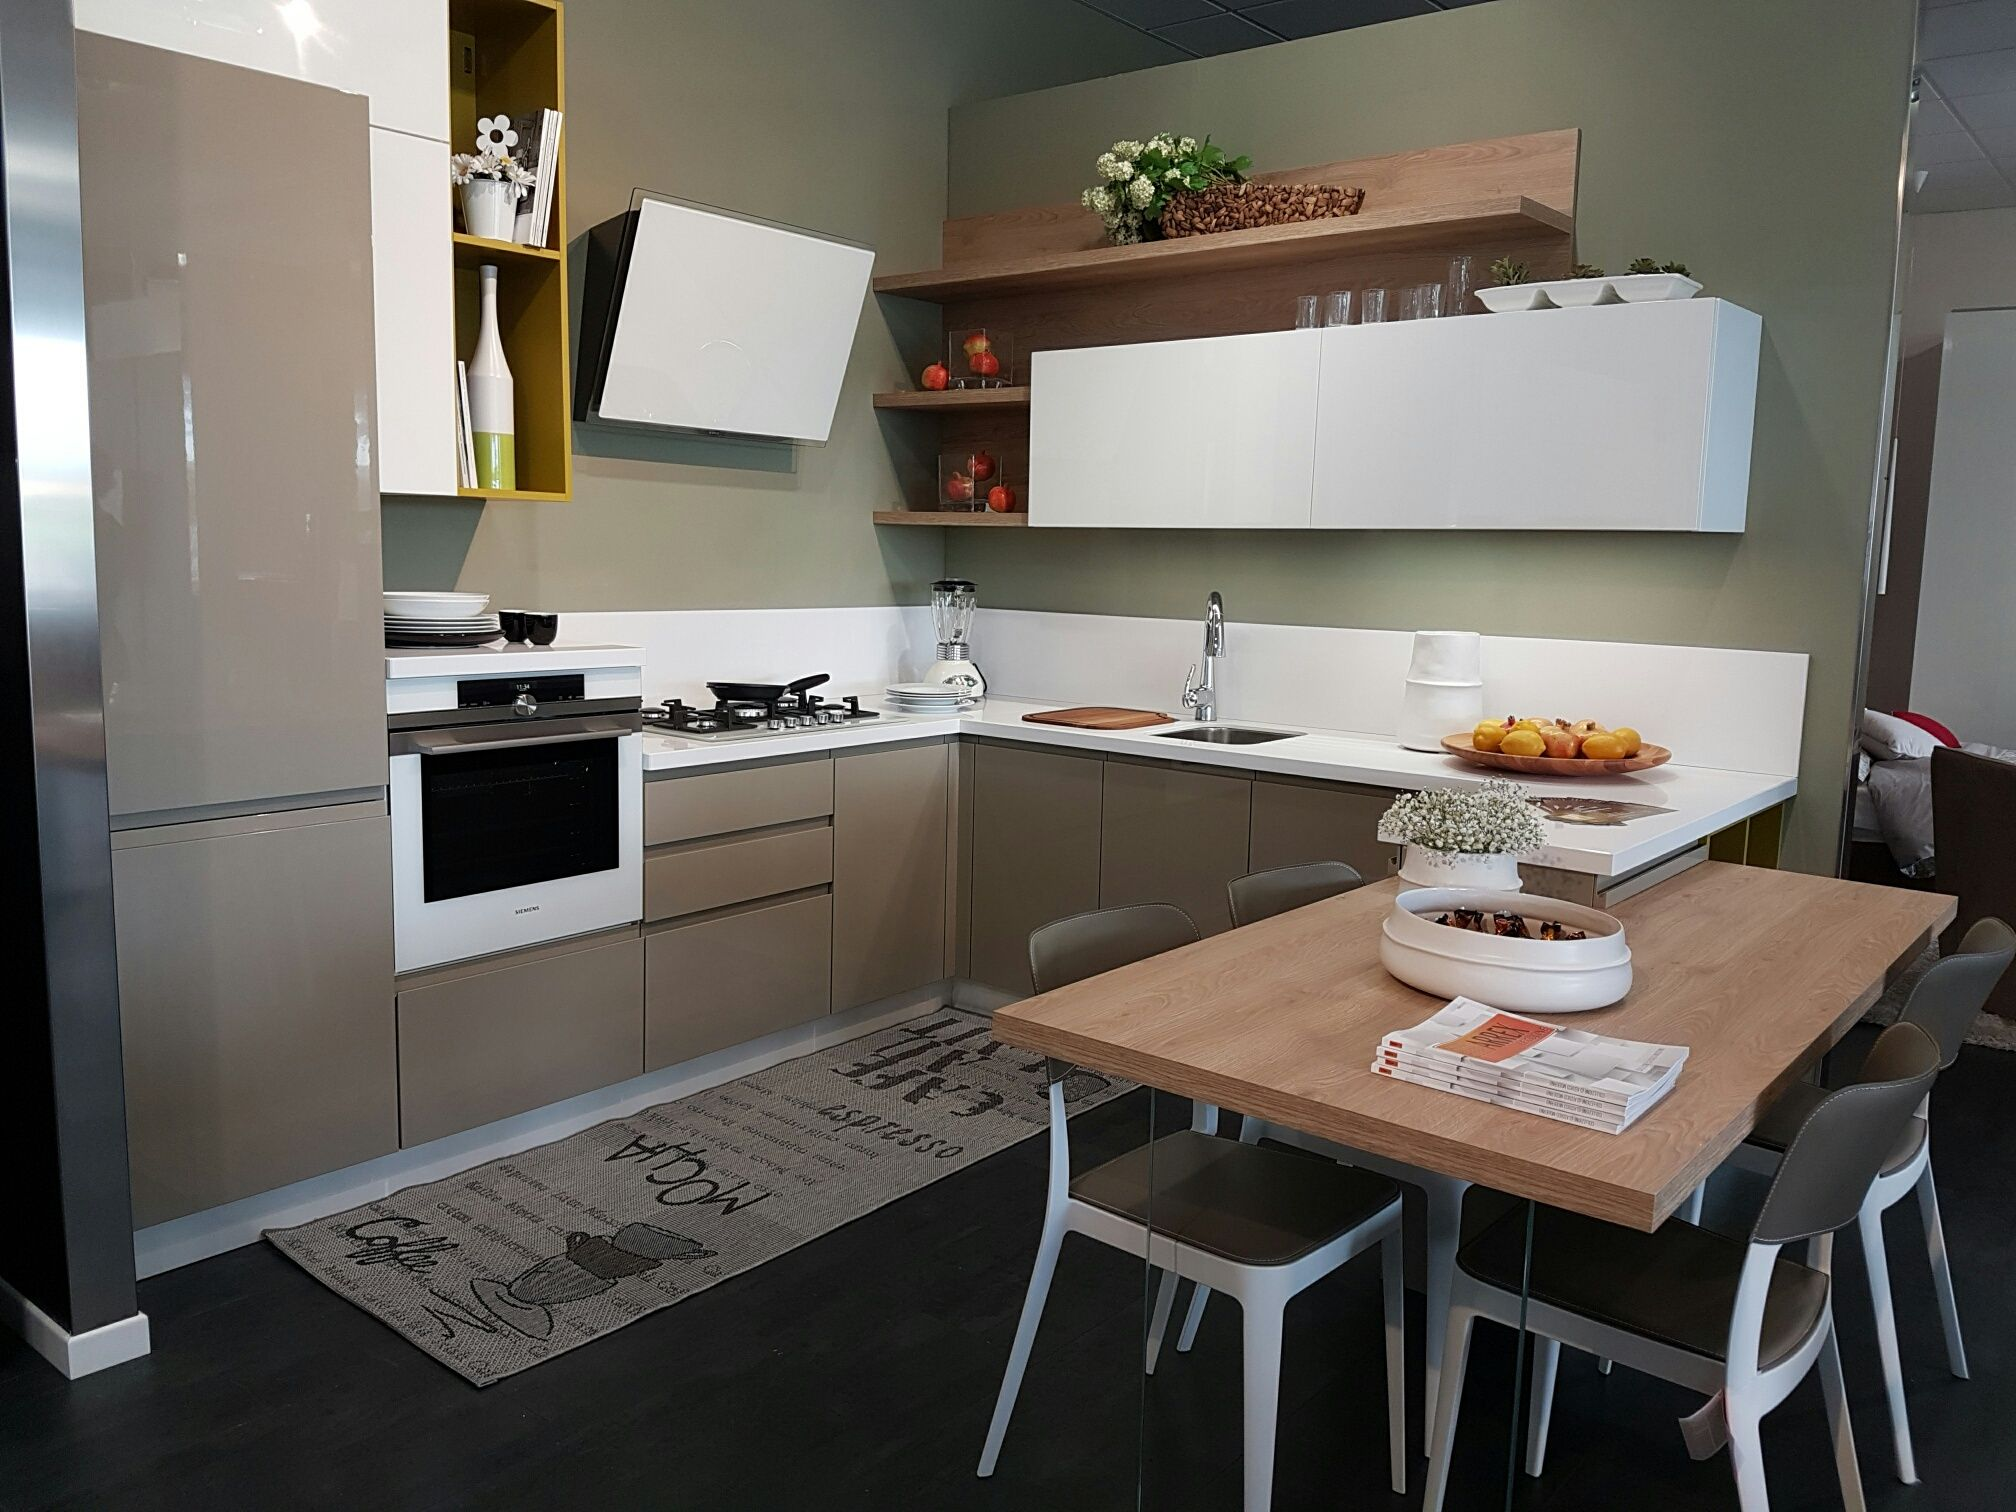 showroom virgili arredamenti italy kitchen by arrex italy